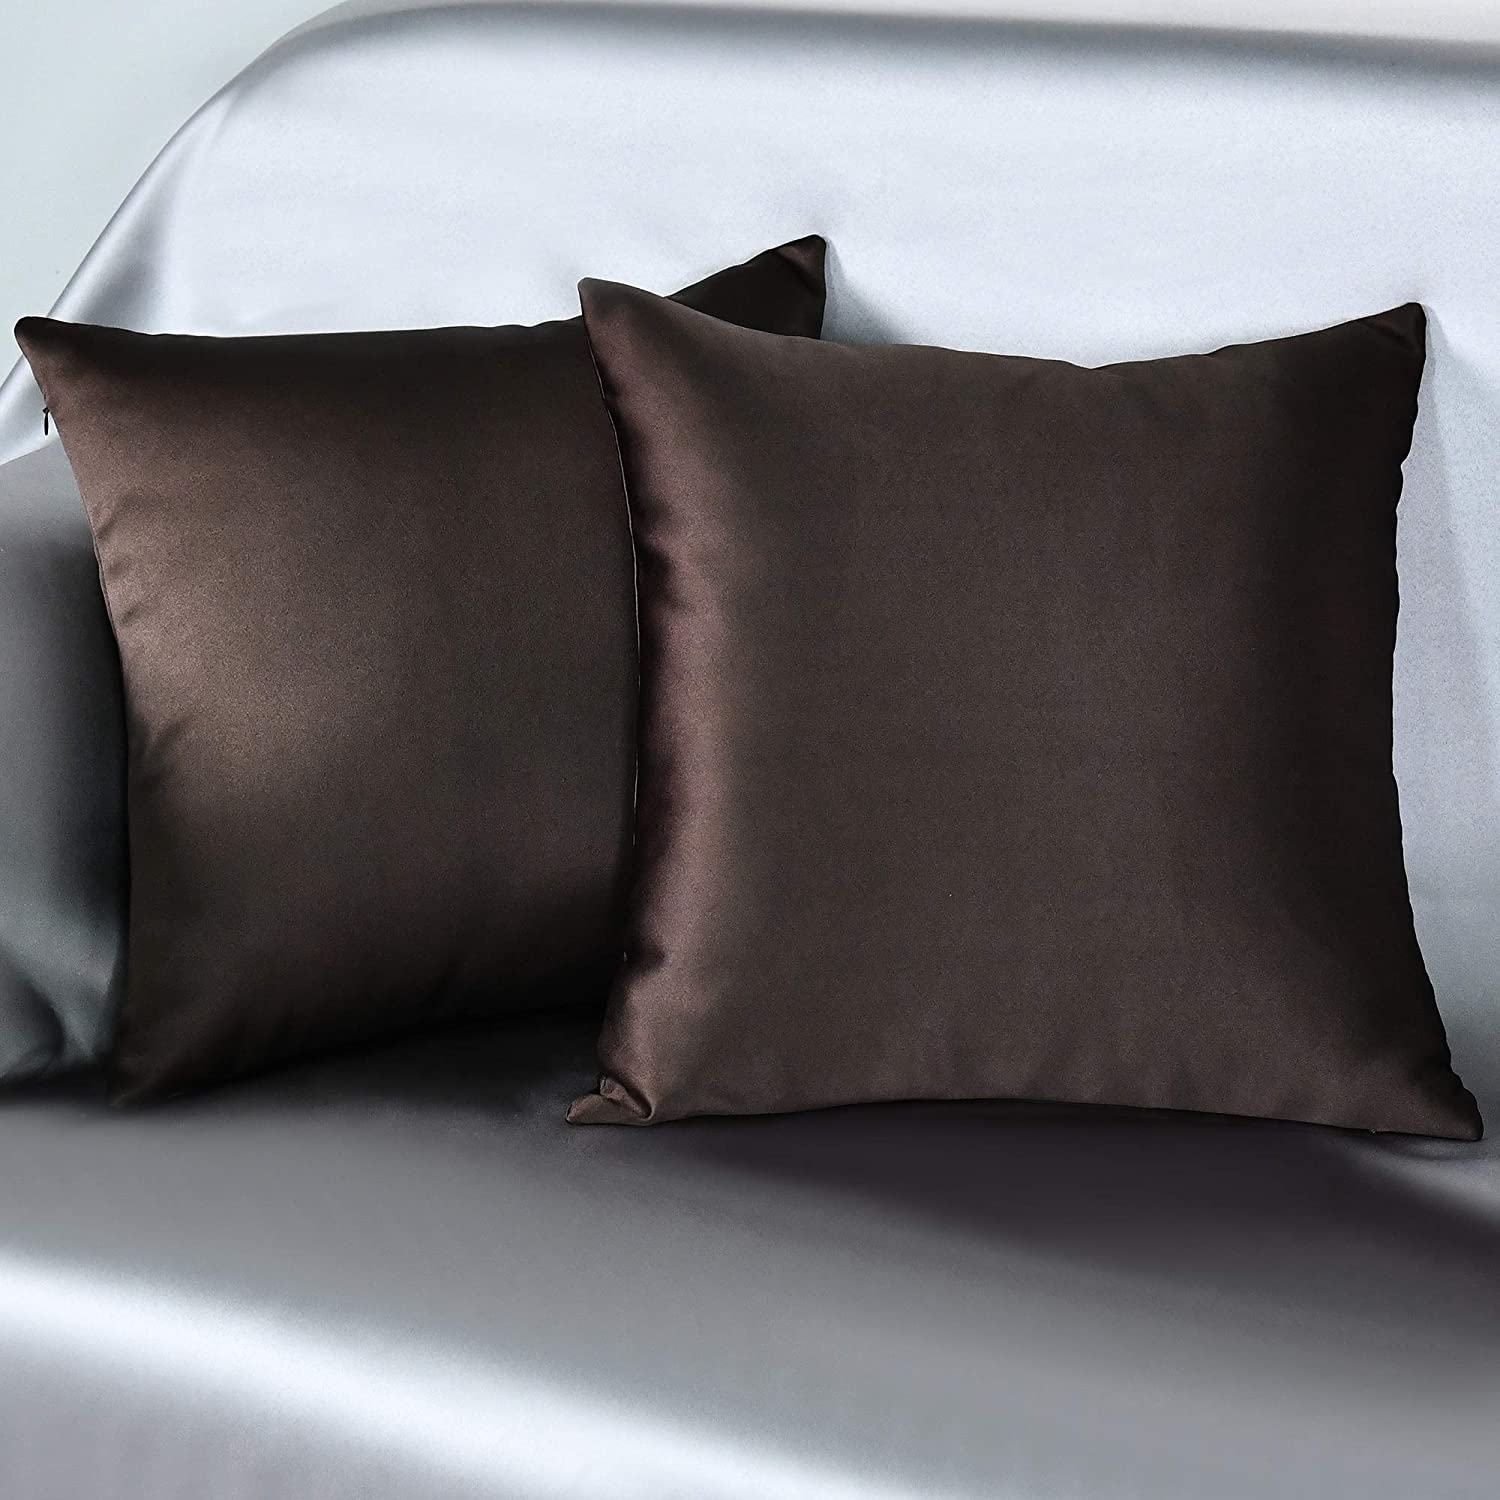 KEQIAOSUOCAI Decorative Throw Pillow Covers Soft Silky Satin Solid Cushion Covers 18 X 18 for Couch Bedroom Car, Pack of 2, Coffee Brown